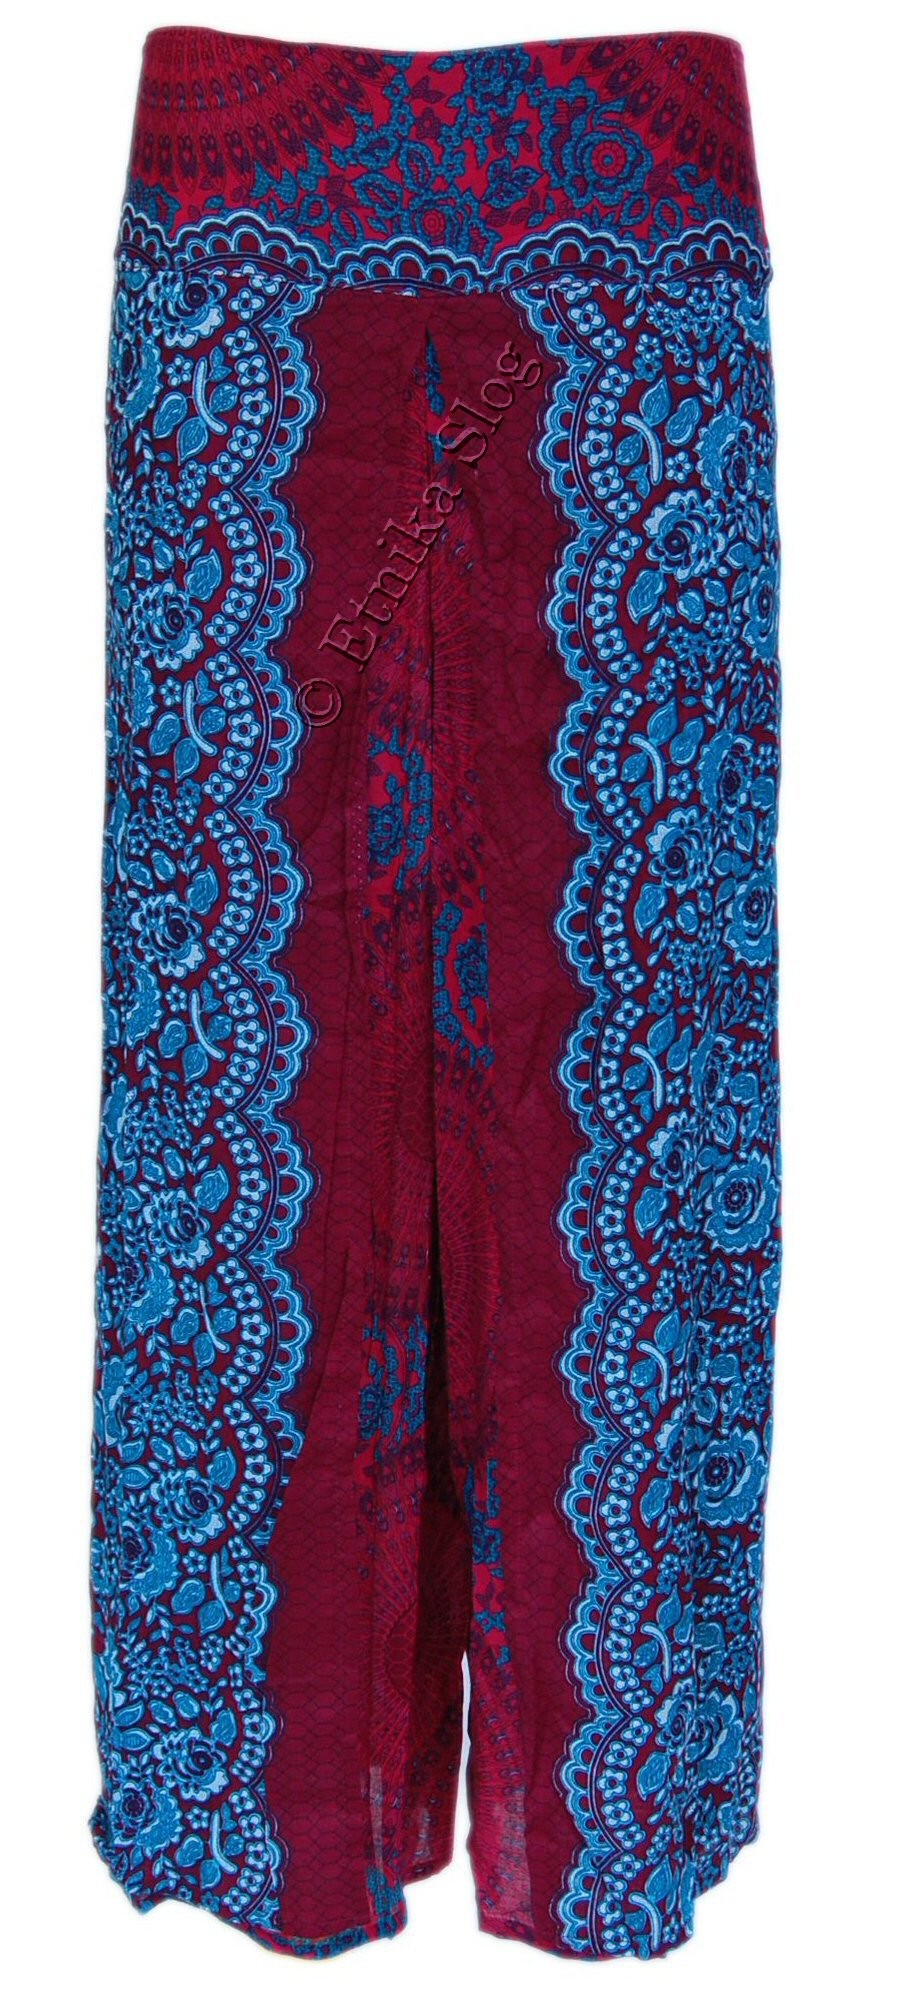 VISCOSE - SUMMER CLOTHING AB-BCP09AG - Oriente Import S.r.l.